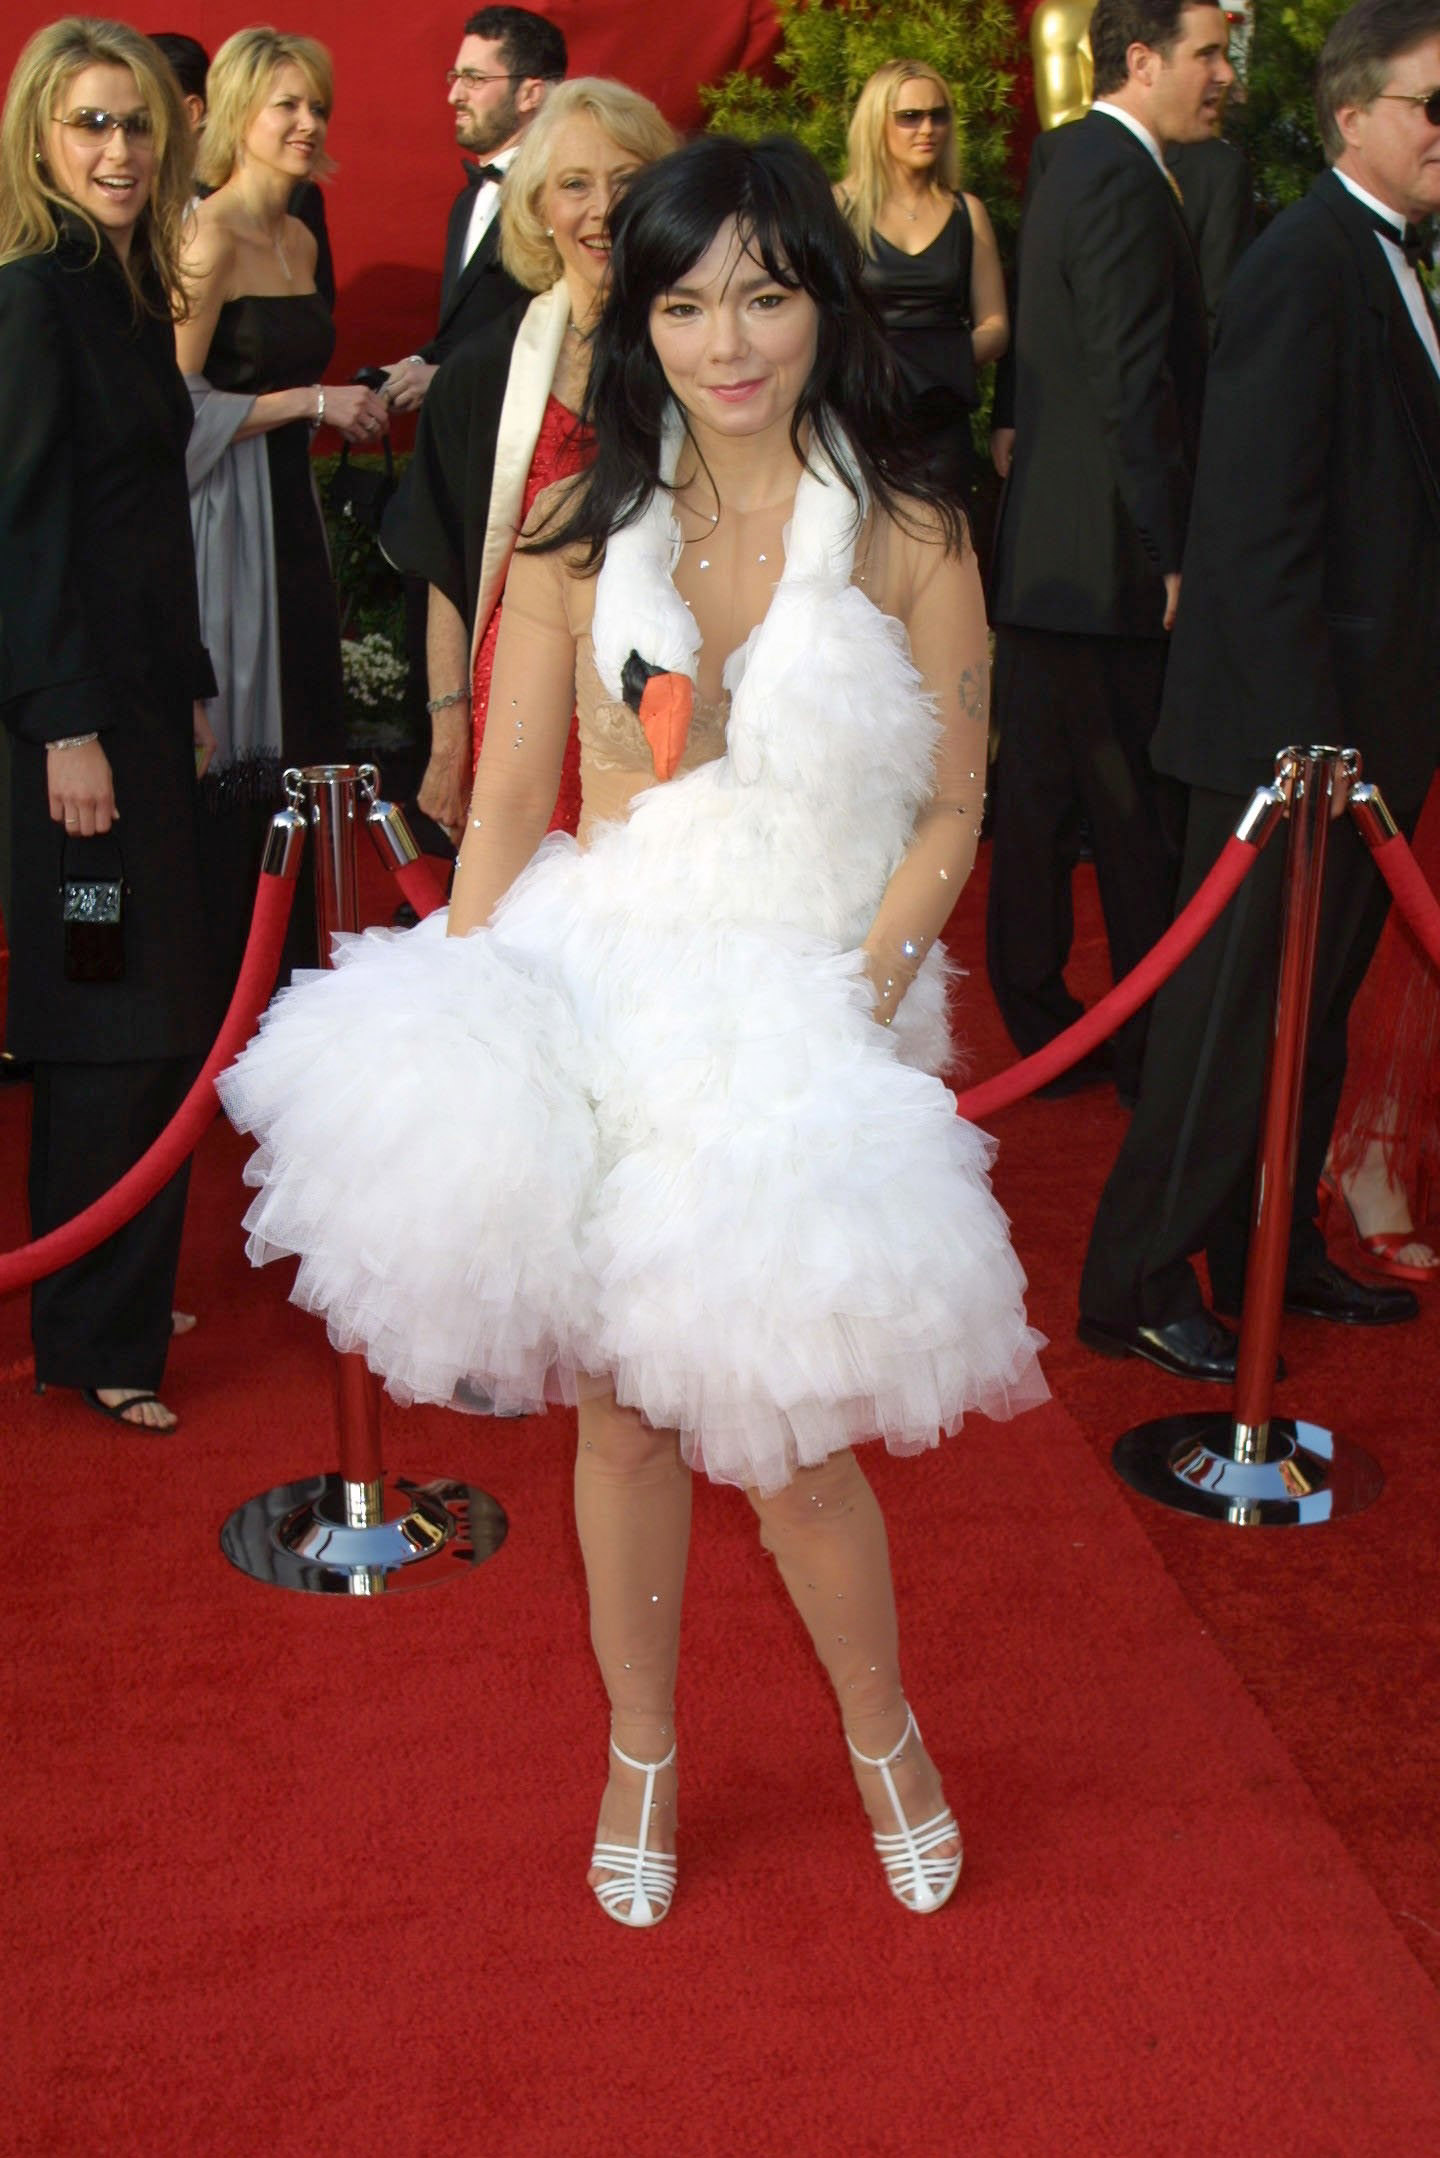 Björk at an event for The 73rd Annual Academy Awards (2001)